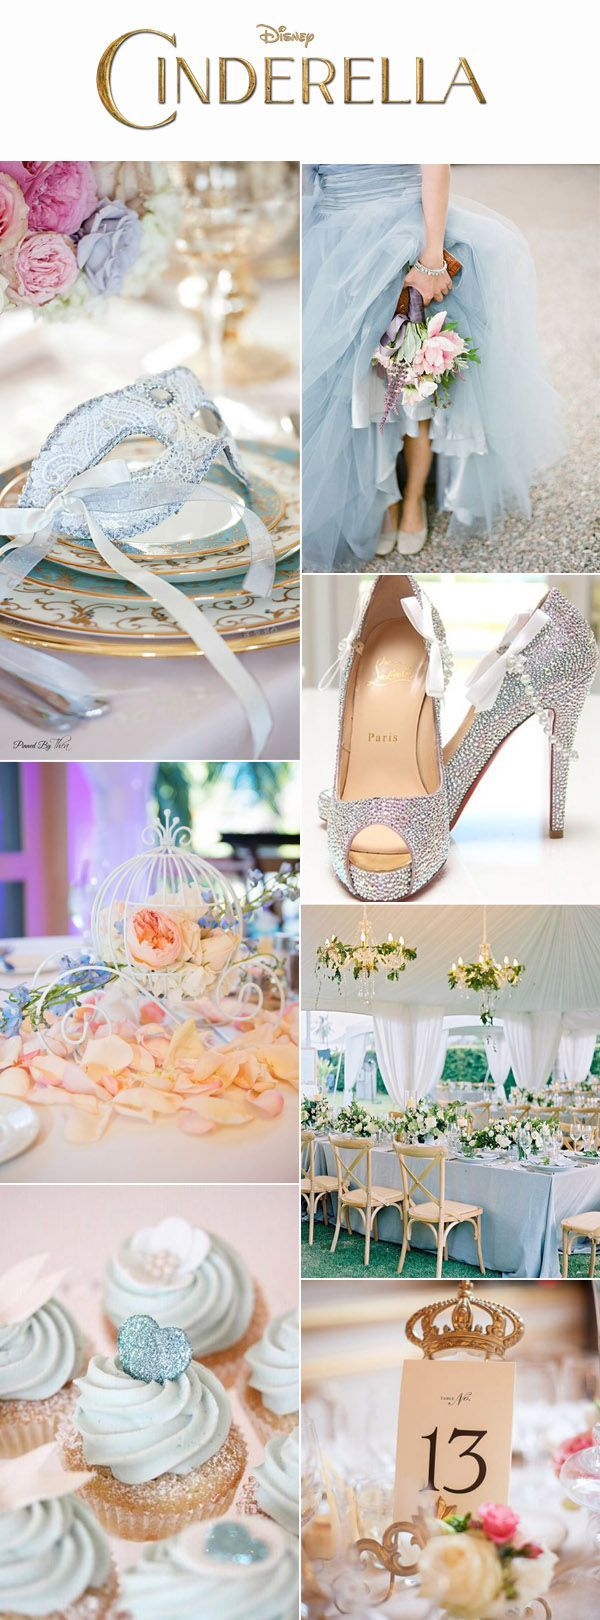 Fairytale Wedding Theme: Ideas To Make Your Wedding Magical, Romantic And  Unique